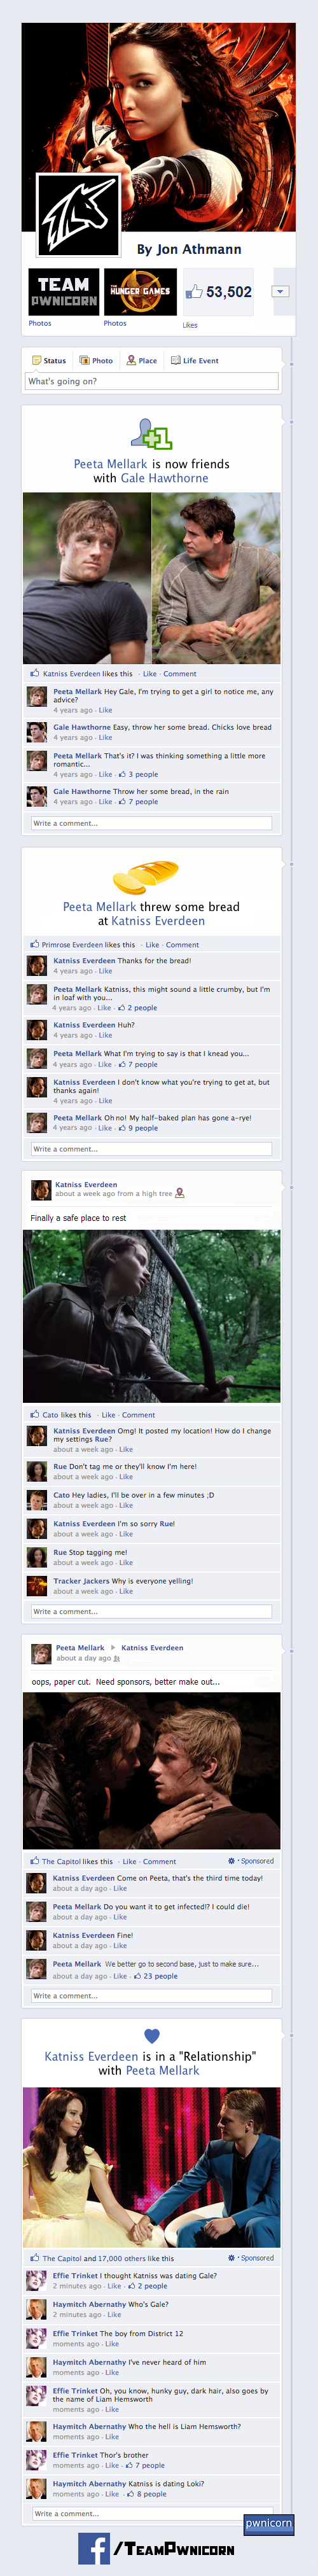 The Hunger Games on Facebook by Team Pwnicorn